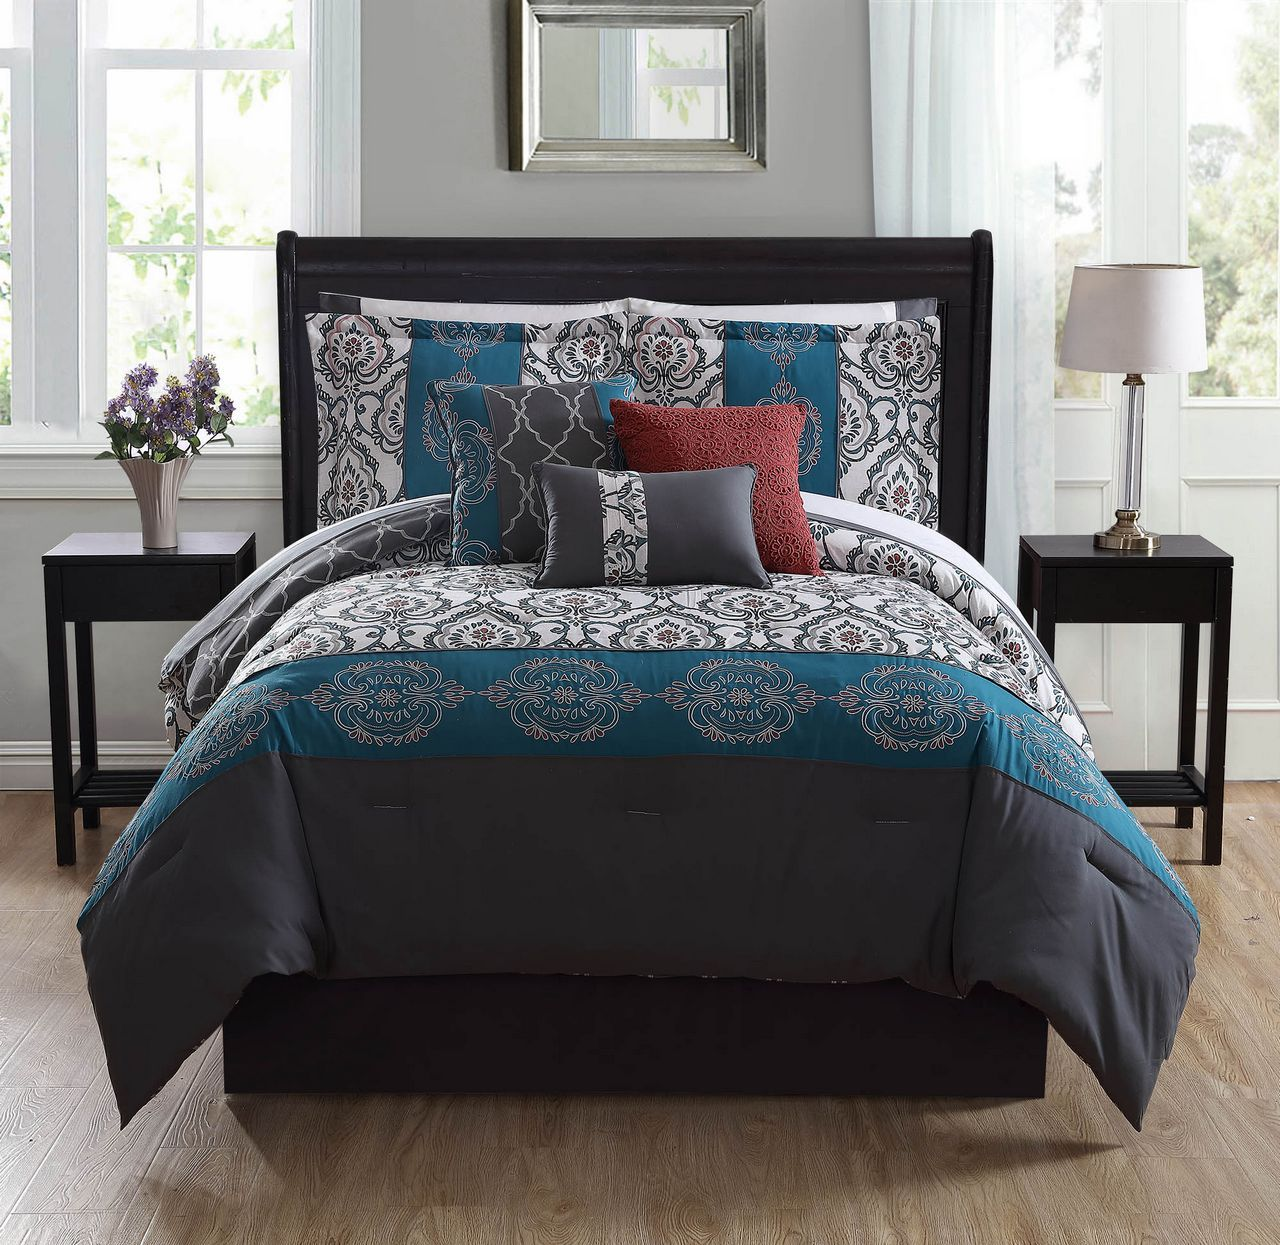 unique sets cover teal piece covers buchanan comforter duvet color set furniture beautiful ideas